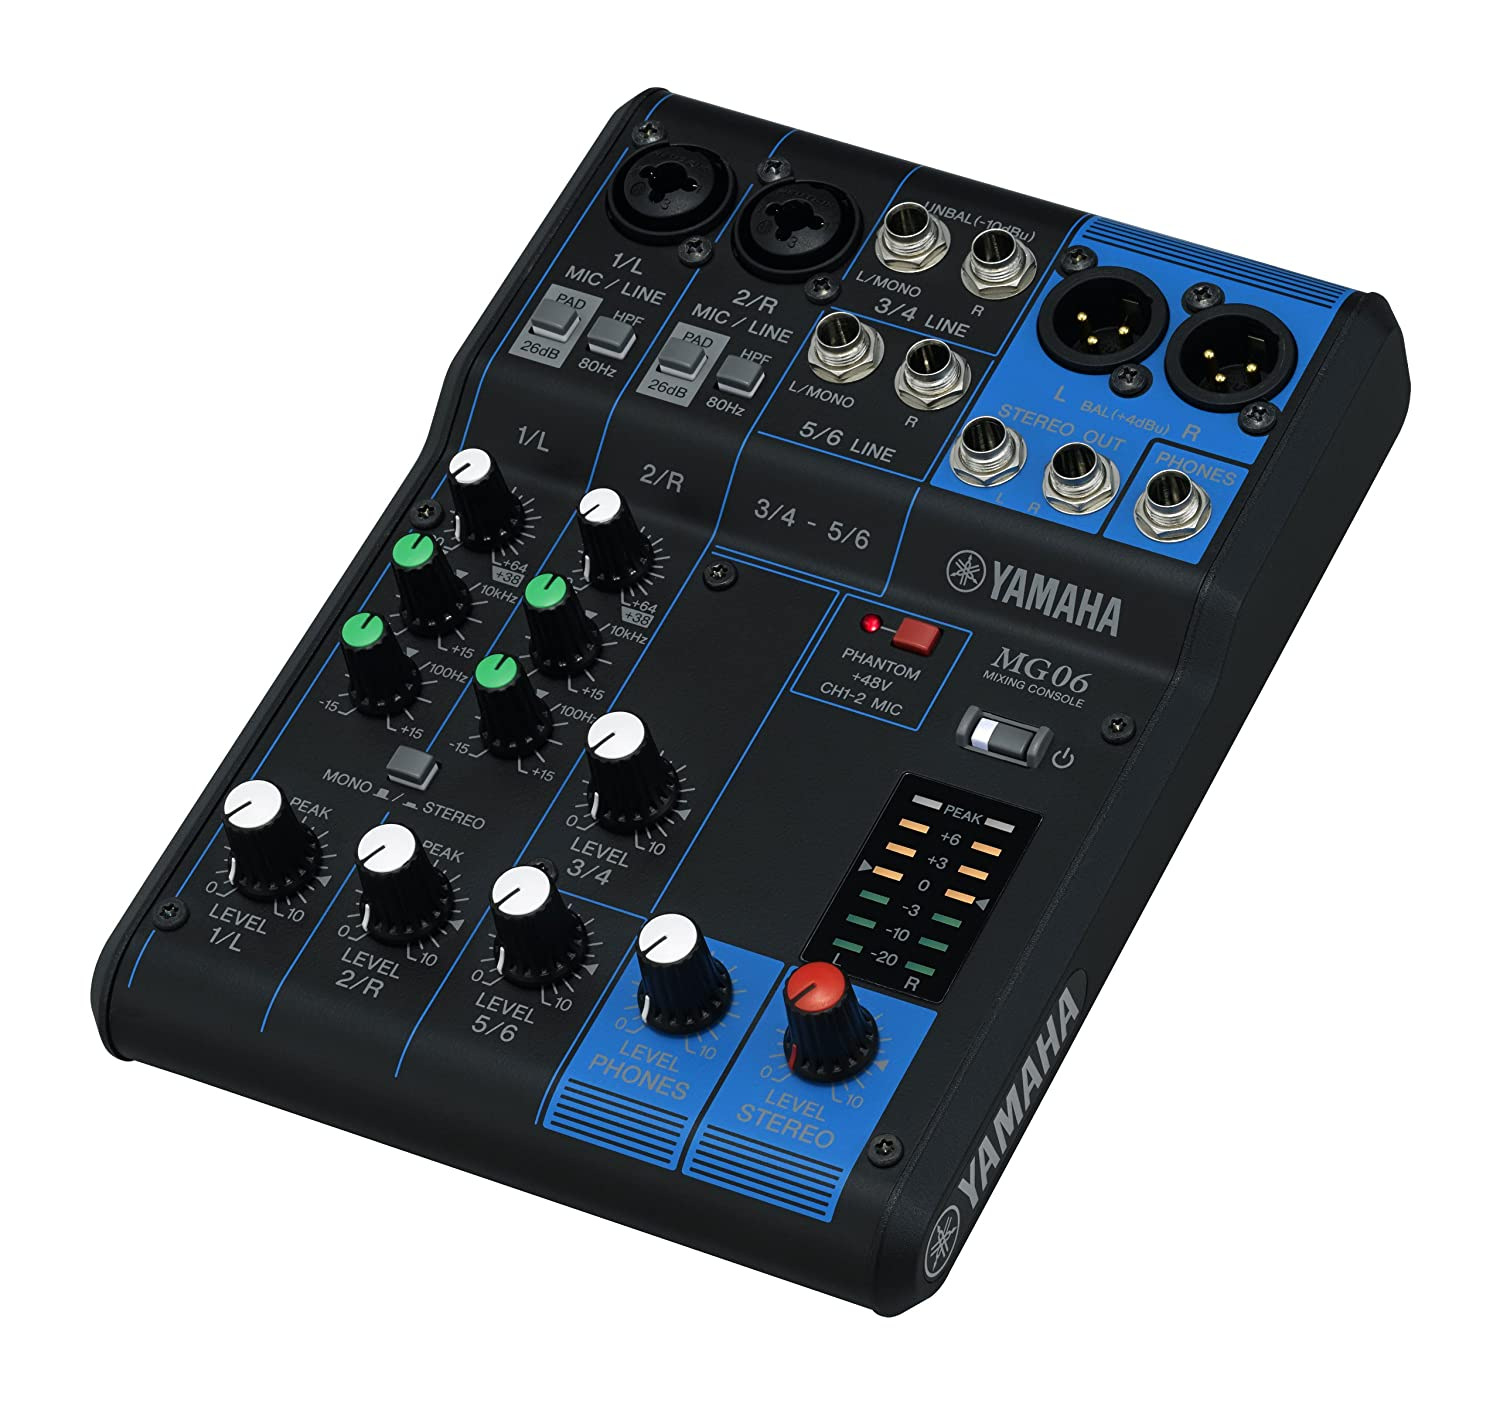 Yamaha Mg06x 6 Input Compact Stereo Mixer With Effects Simple Audio Amplifier 2800w Circuit Diagram Nonstopfree Electronic Musical Instruments